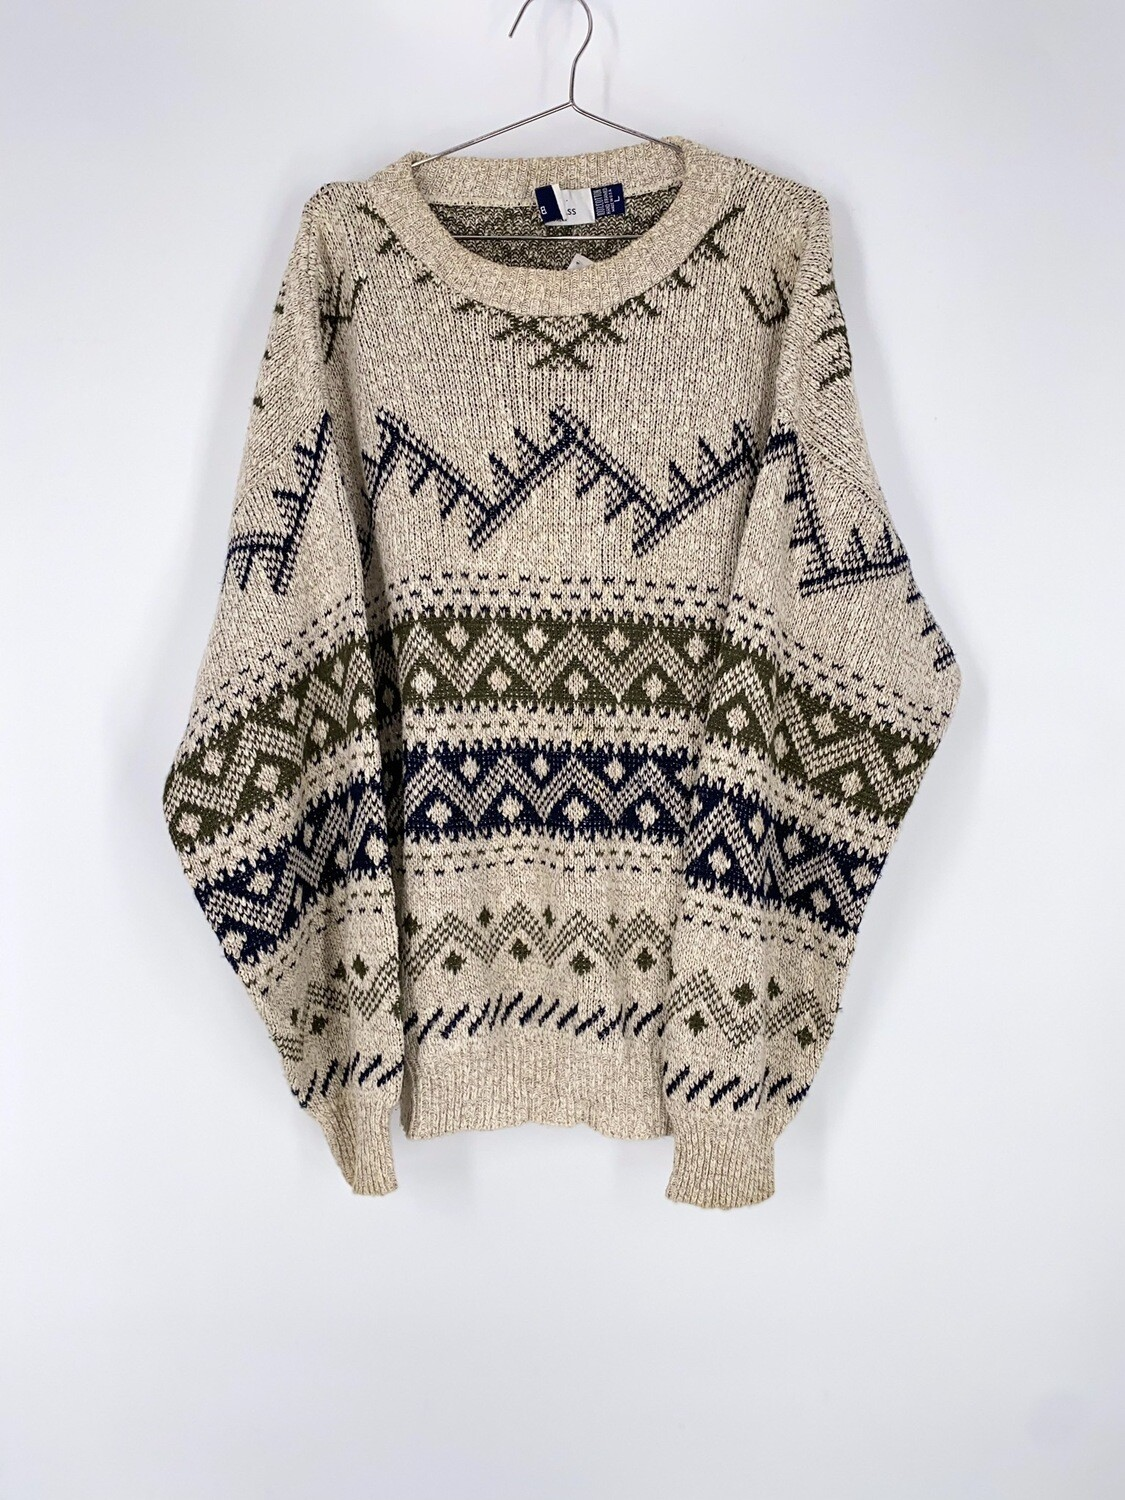 Patterned Cream Sweater Size L